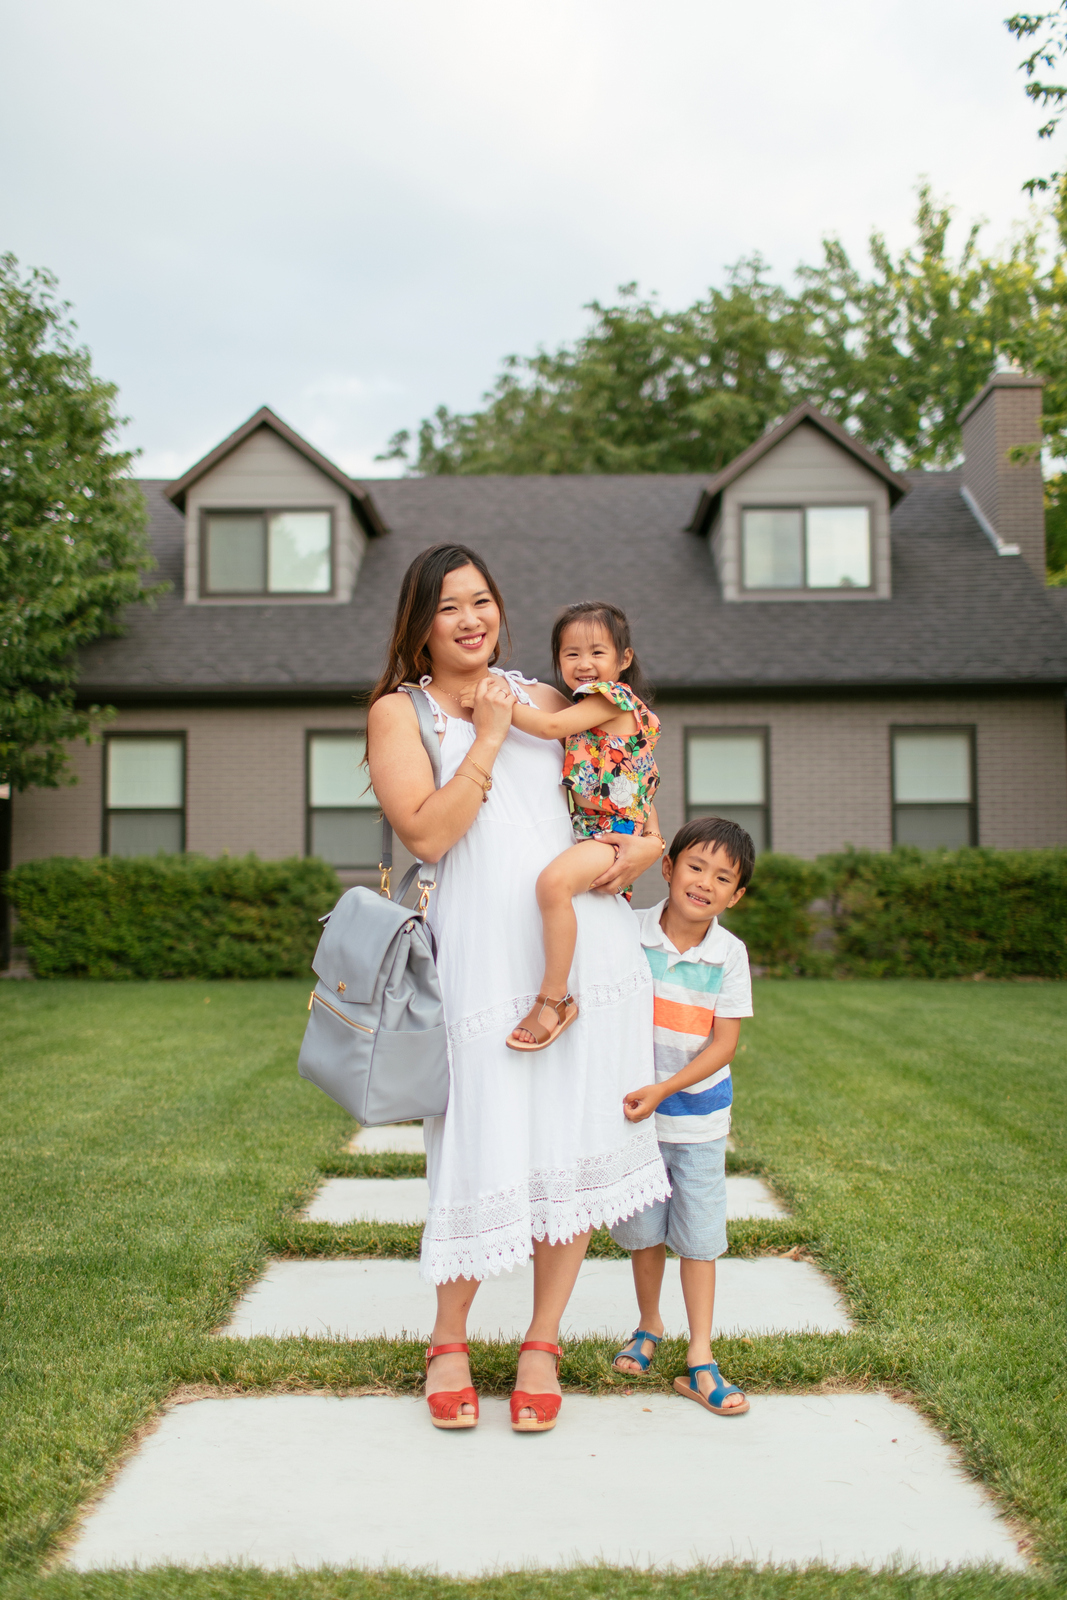 Fantastic Family Photos Ideas Ft. The Cutest Diaper Bag From Freshly Picked by Utah blogger Sandy A La Mode